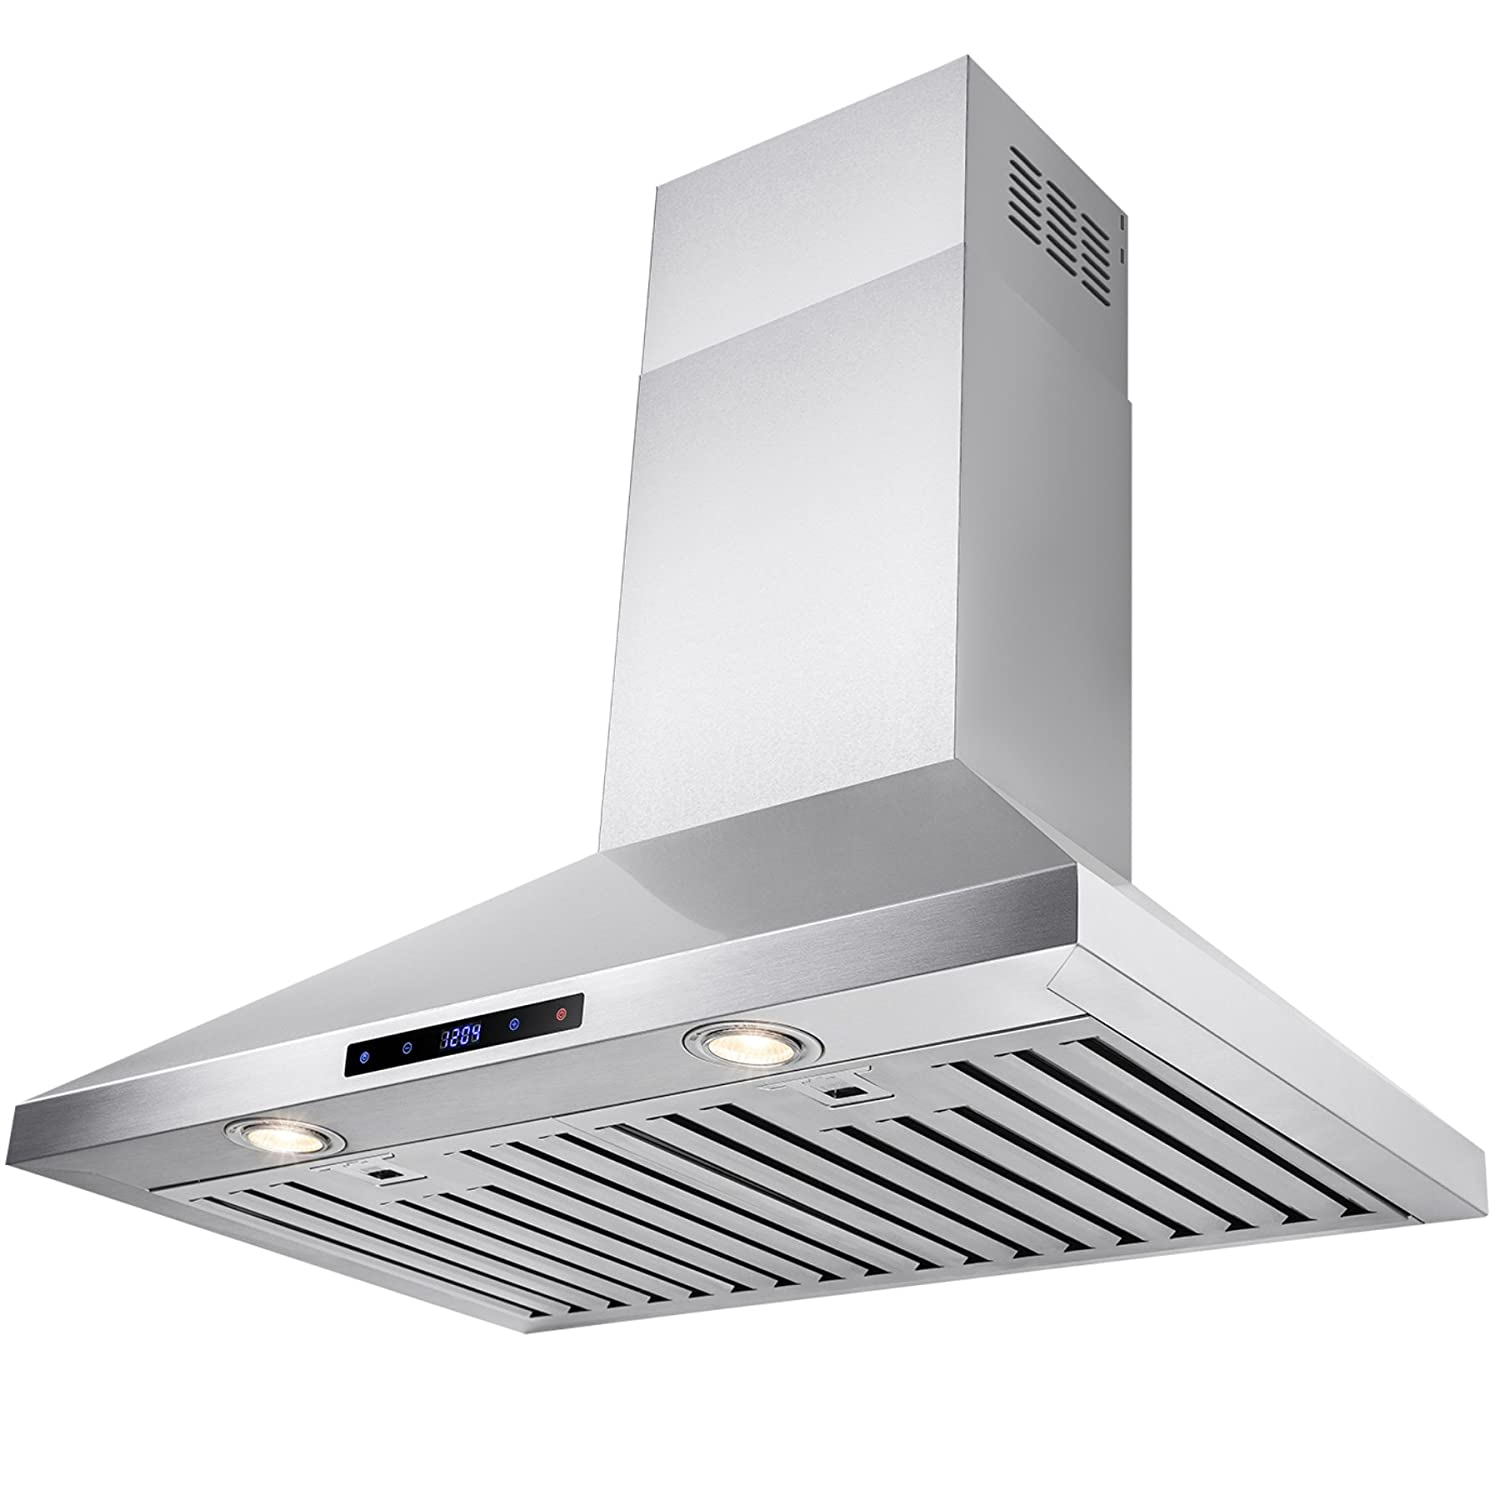 "FIREBIRD New 30"" European Style Wall Mount Stainless Steel Range Hood Vent W/Touch Sensor Control"